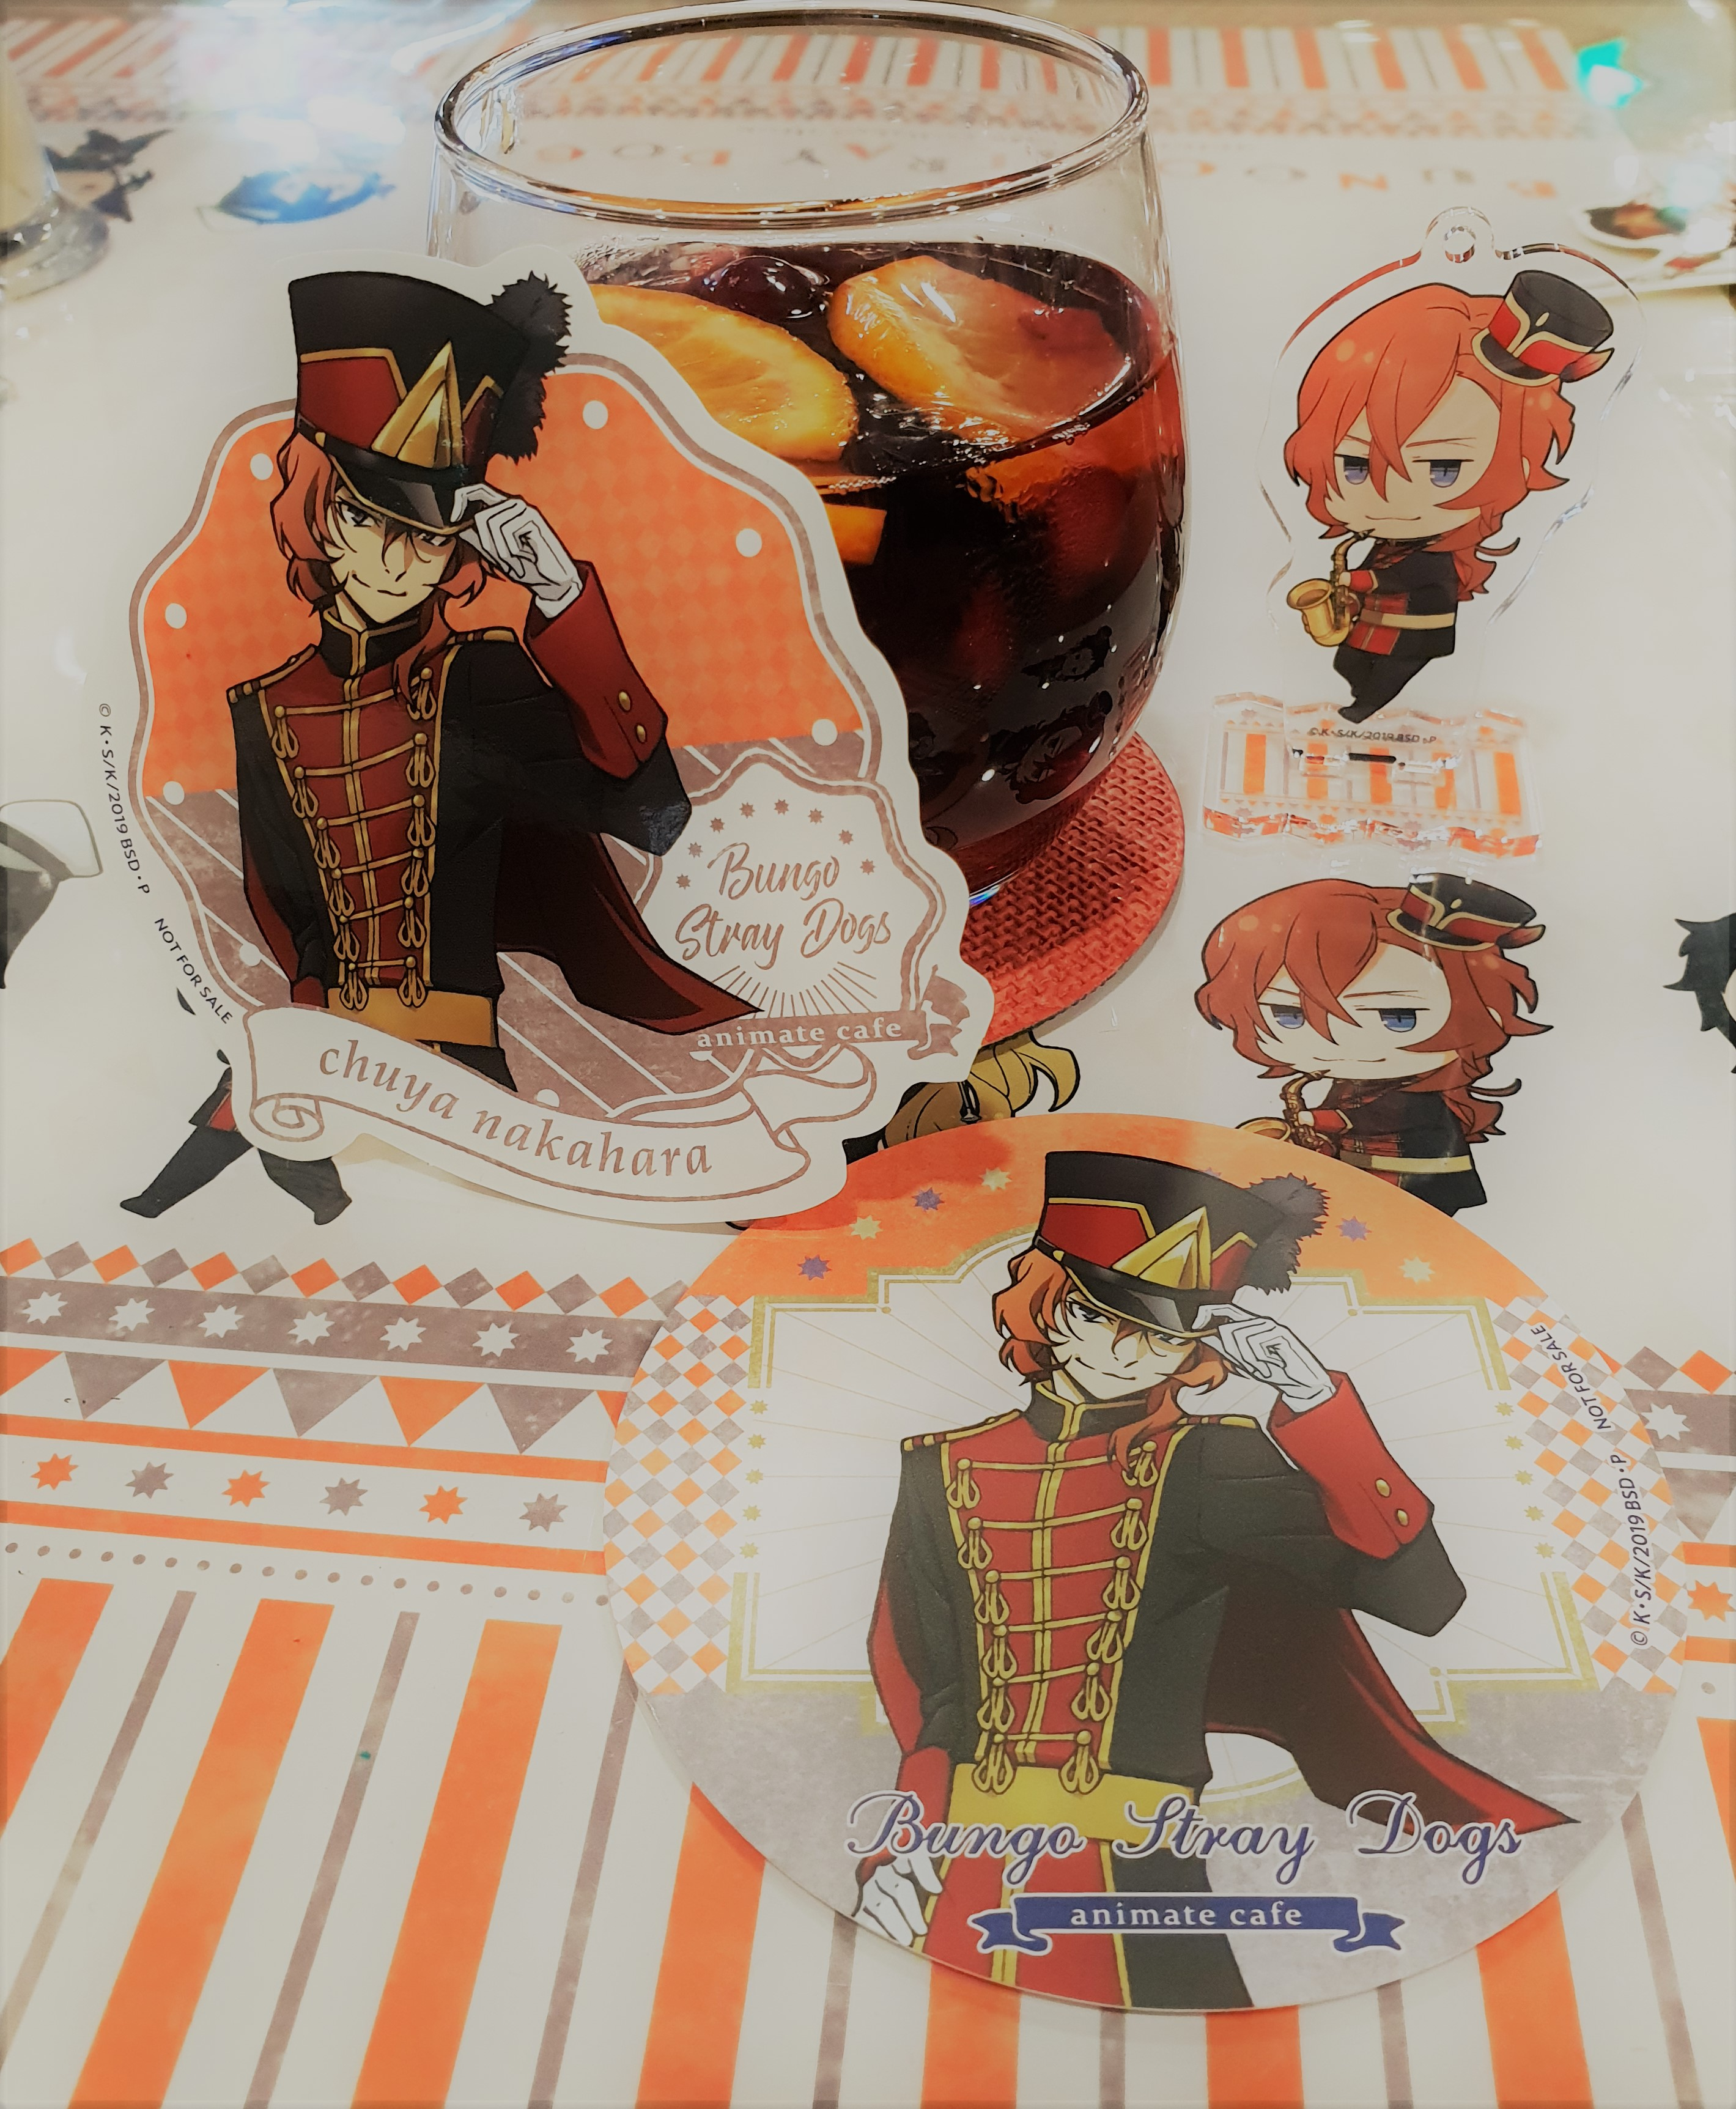 Bungo Stray Dogs 文豪ストレイドッグス x Animate Cafe - Geeky